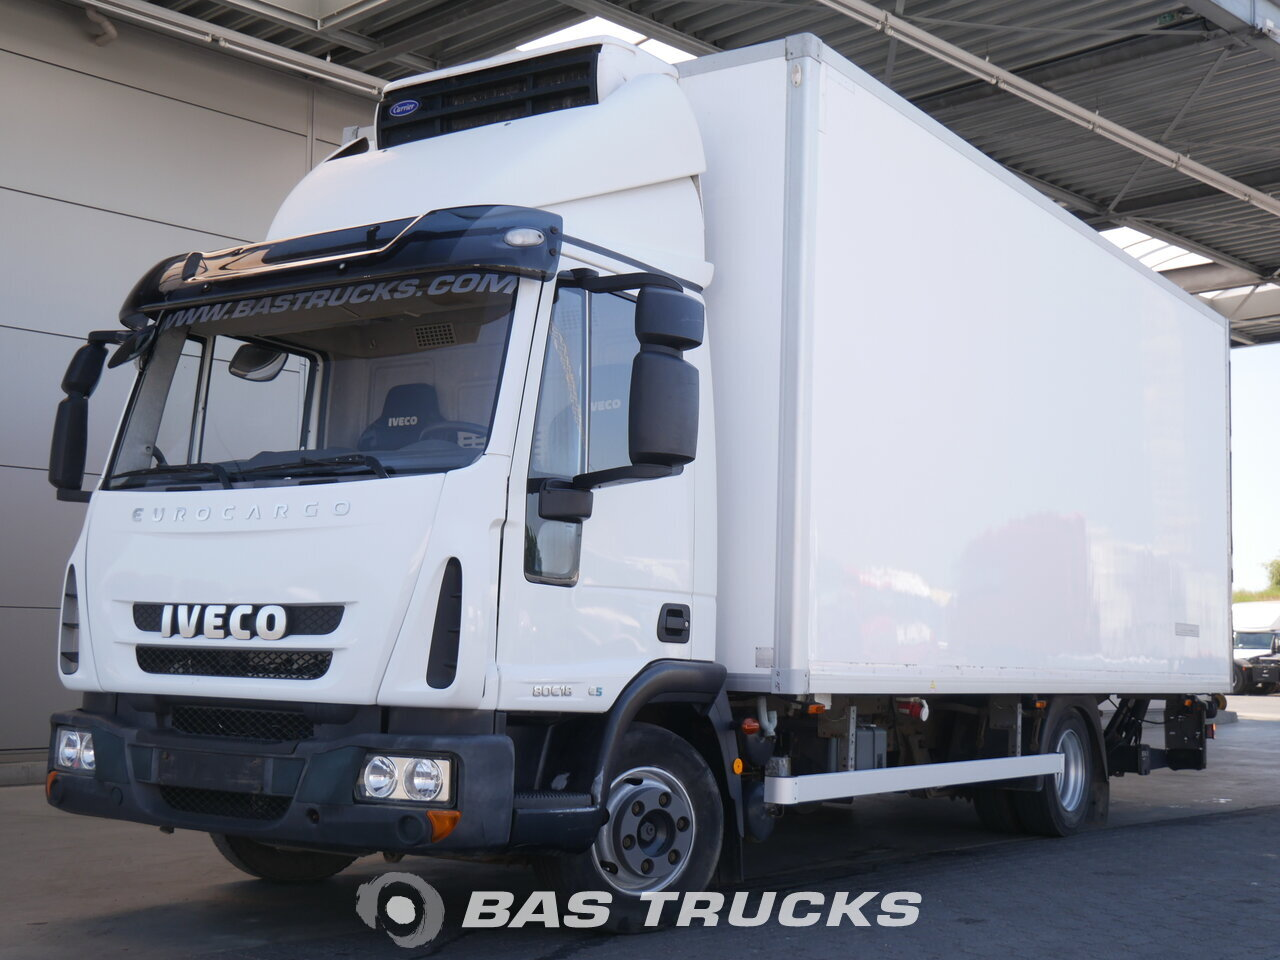 For sale at BAS Trucks: IVECO Eurocargo 80E18 4X2 08/2012